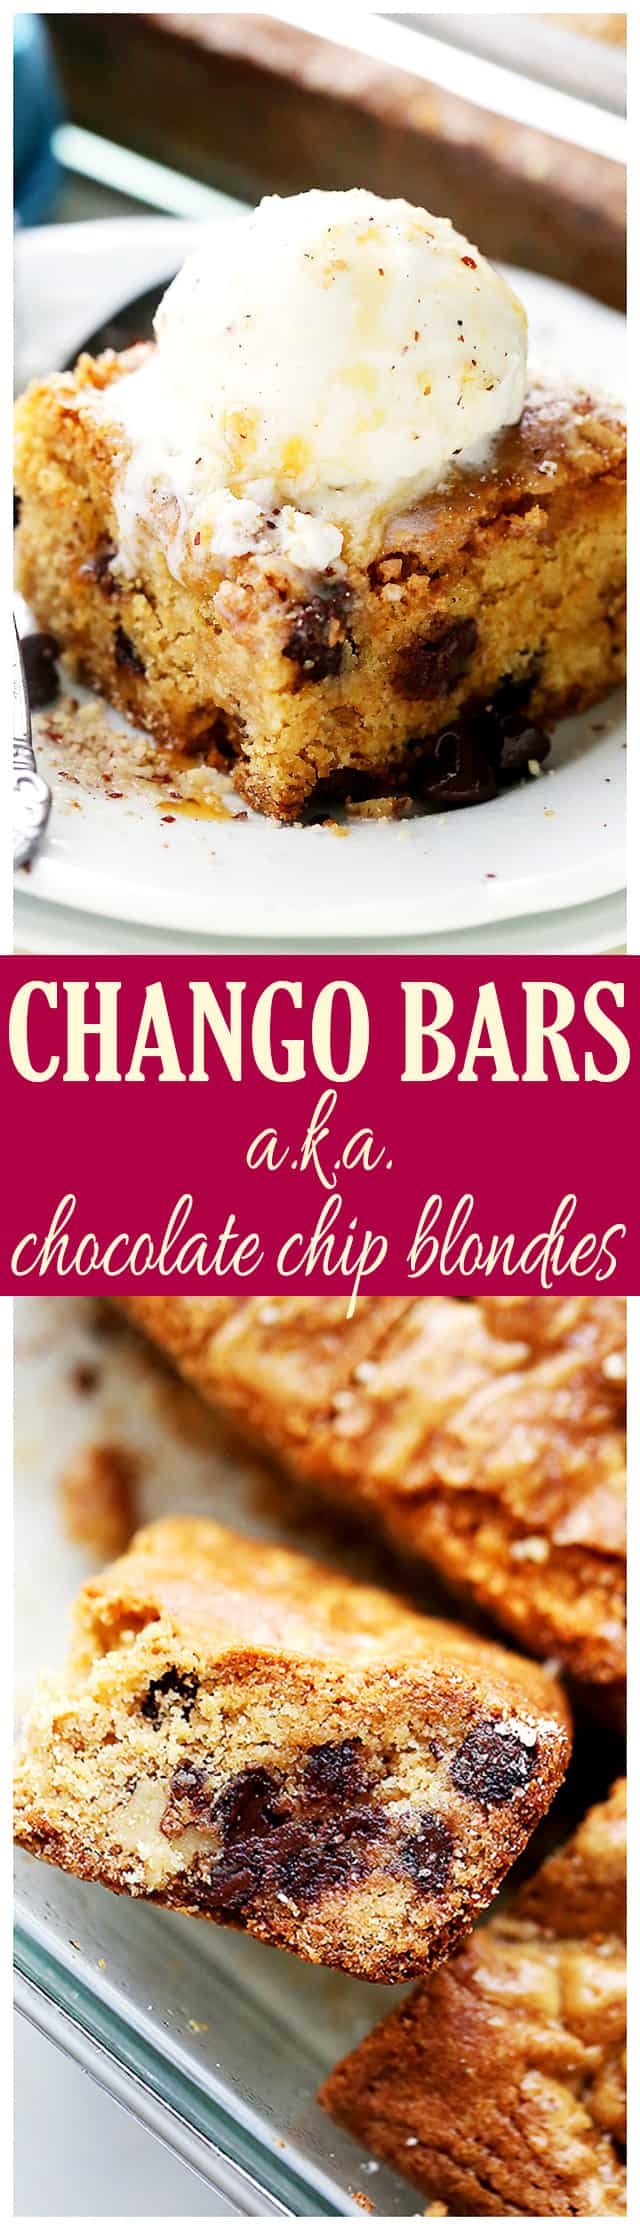 Chango Bars (Chocolate Chip Blondies) - Irresistible, chewy, classic cookie bars loaded with chocolate chips and deliciousness! It's a recipe everyone will be asking for!